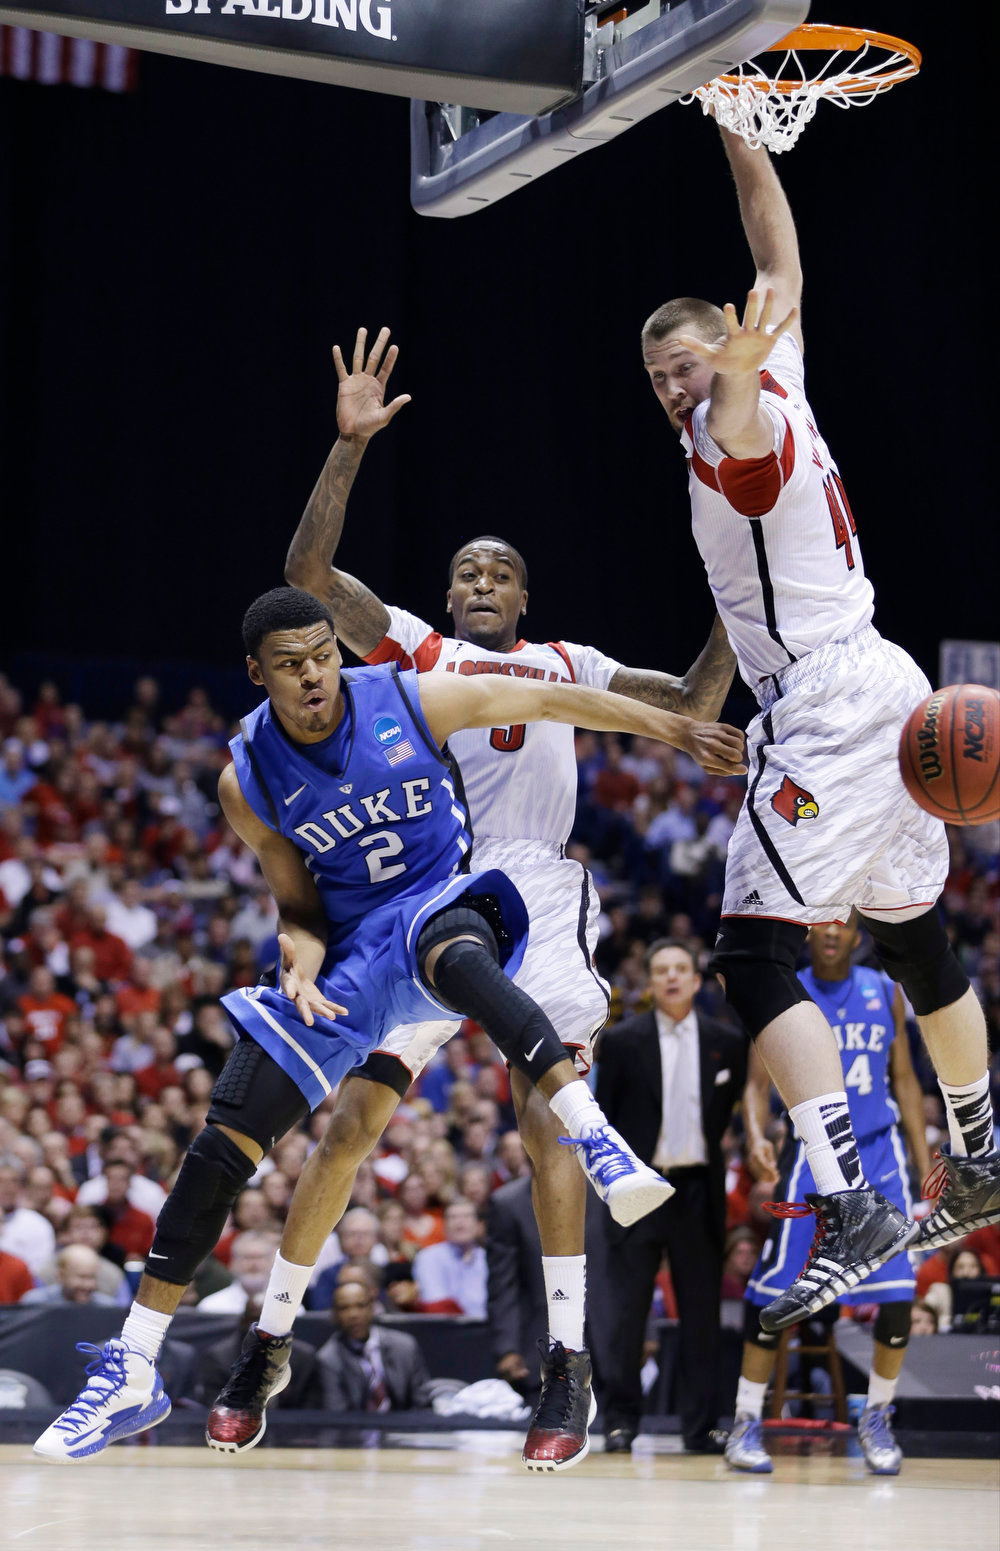 Description of . Duke's Quinn Cook (2) passes the ball against Louisville's Stephan Van Treese (44) and Kevin Ware (5) during the first half of the Midwest Regional final in the NCAA college basketball tournament, Sunday, March 31, 2013, in Indianapolis. (AP Photo/Darron Cummings)